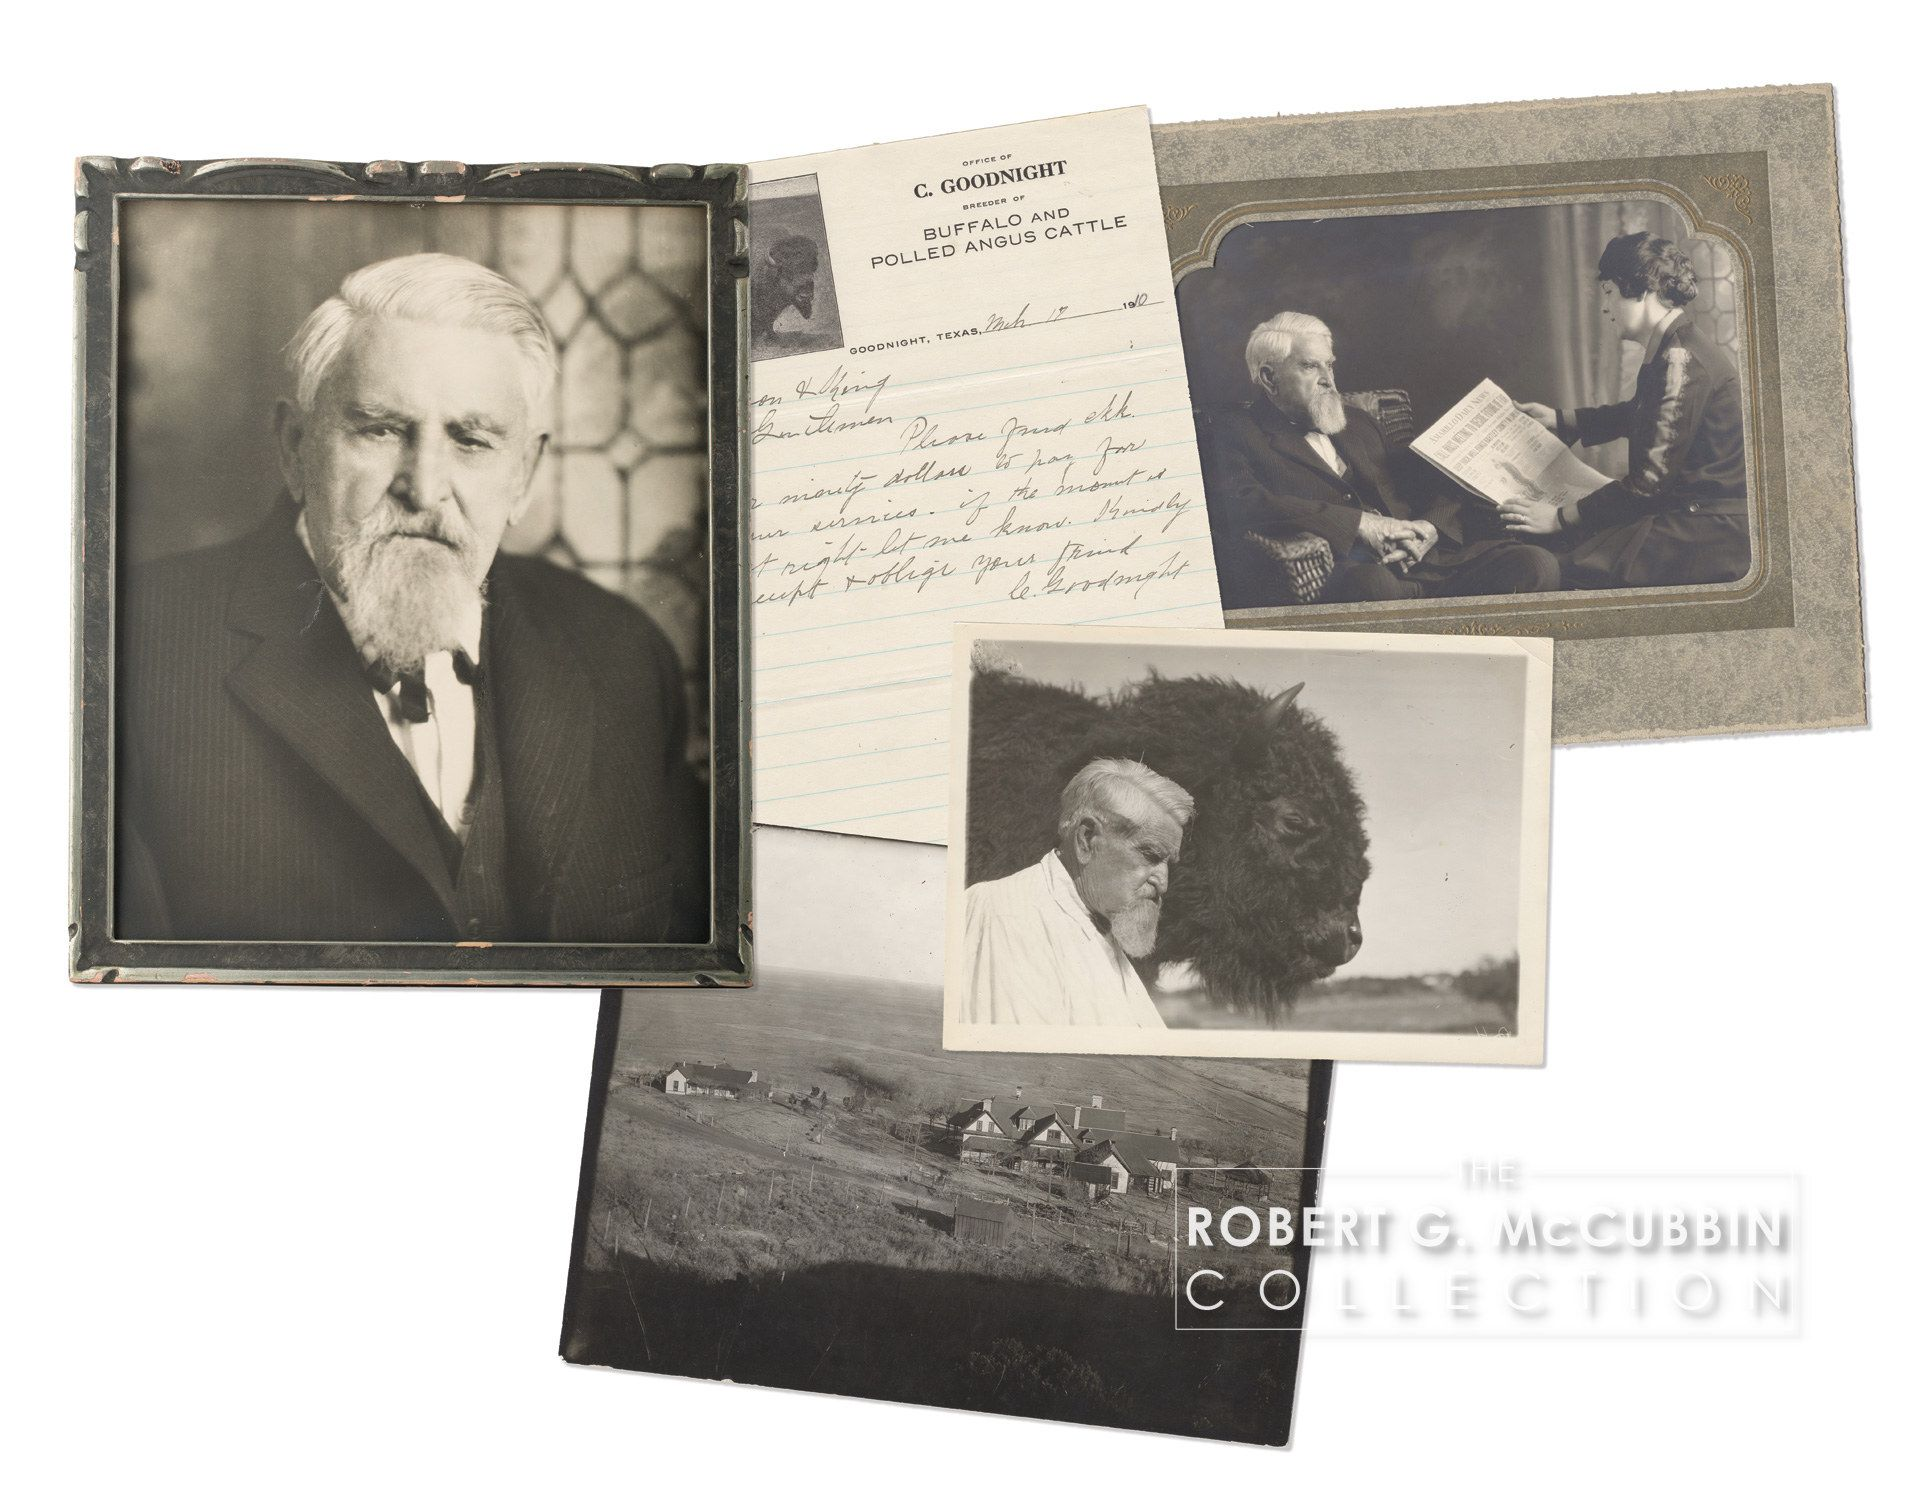 Photographs And Letter Of Charles Goodnight Charles Goodnight History Icon Old West